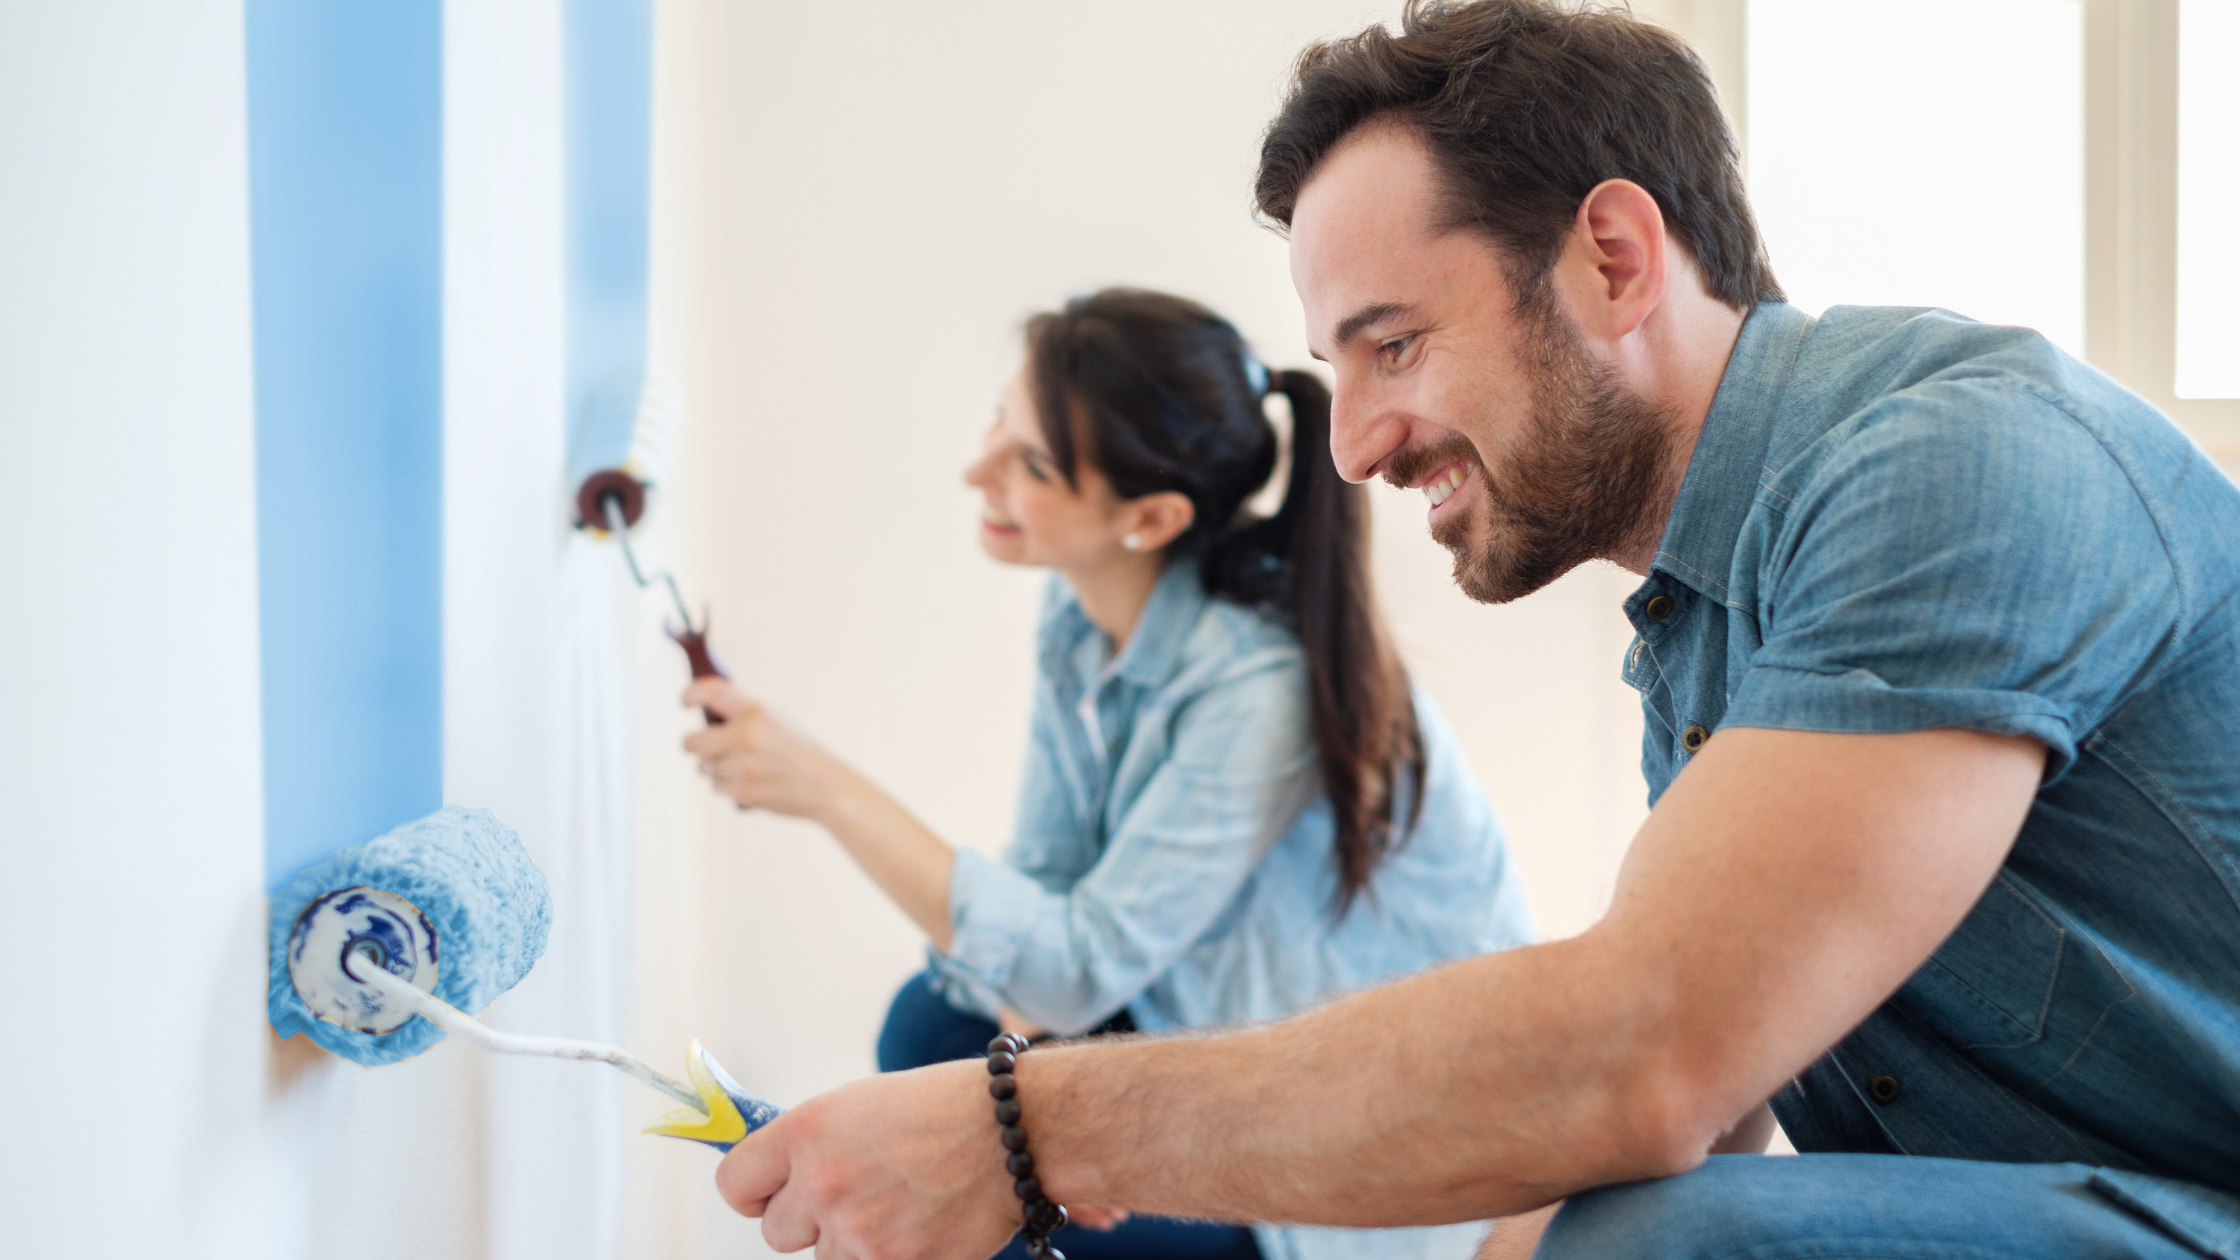 How To Add Value To Your Home in 2021